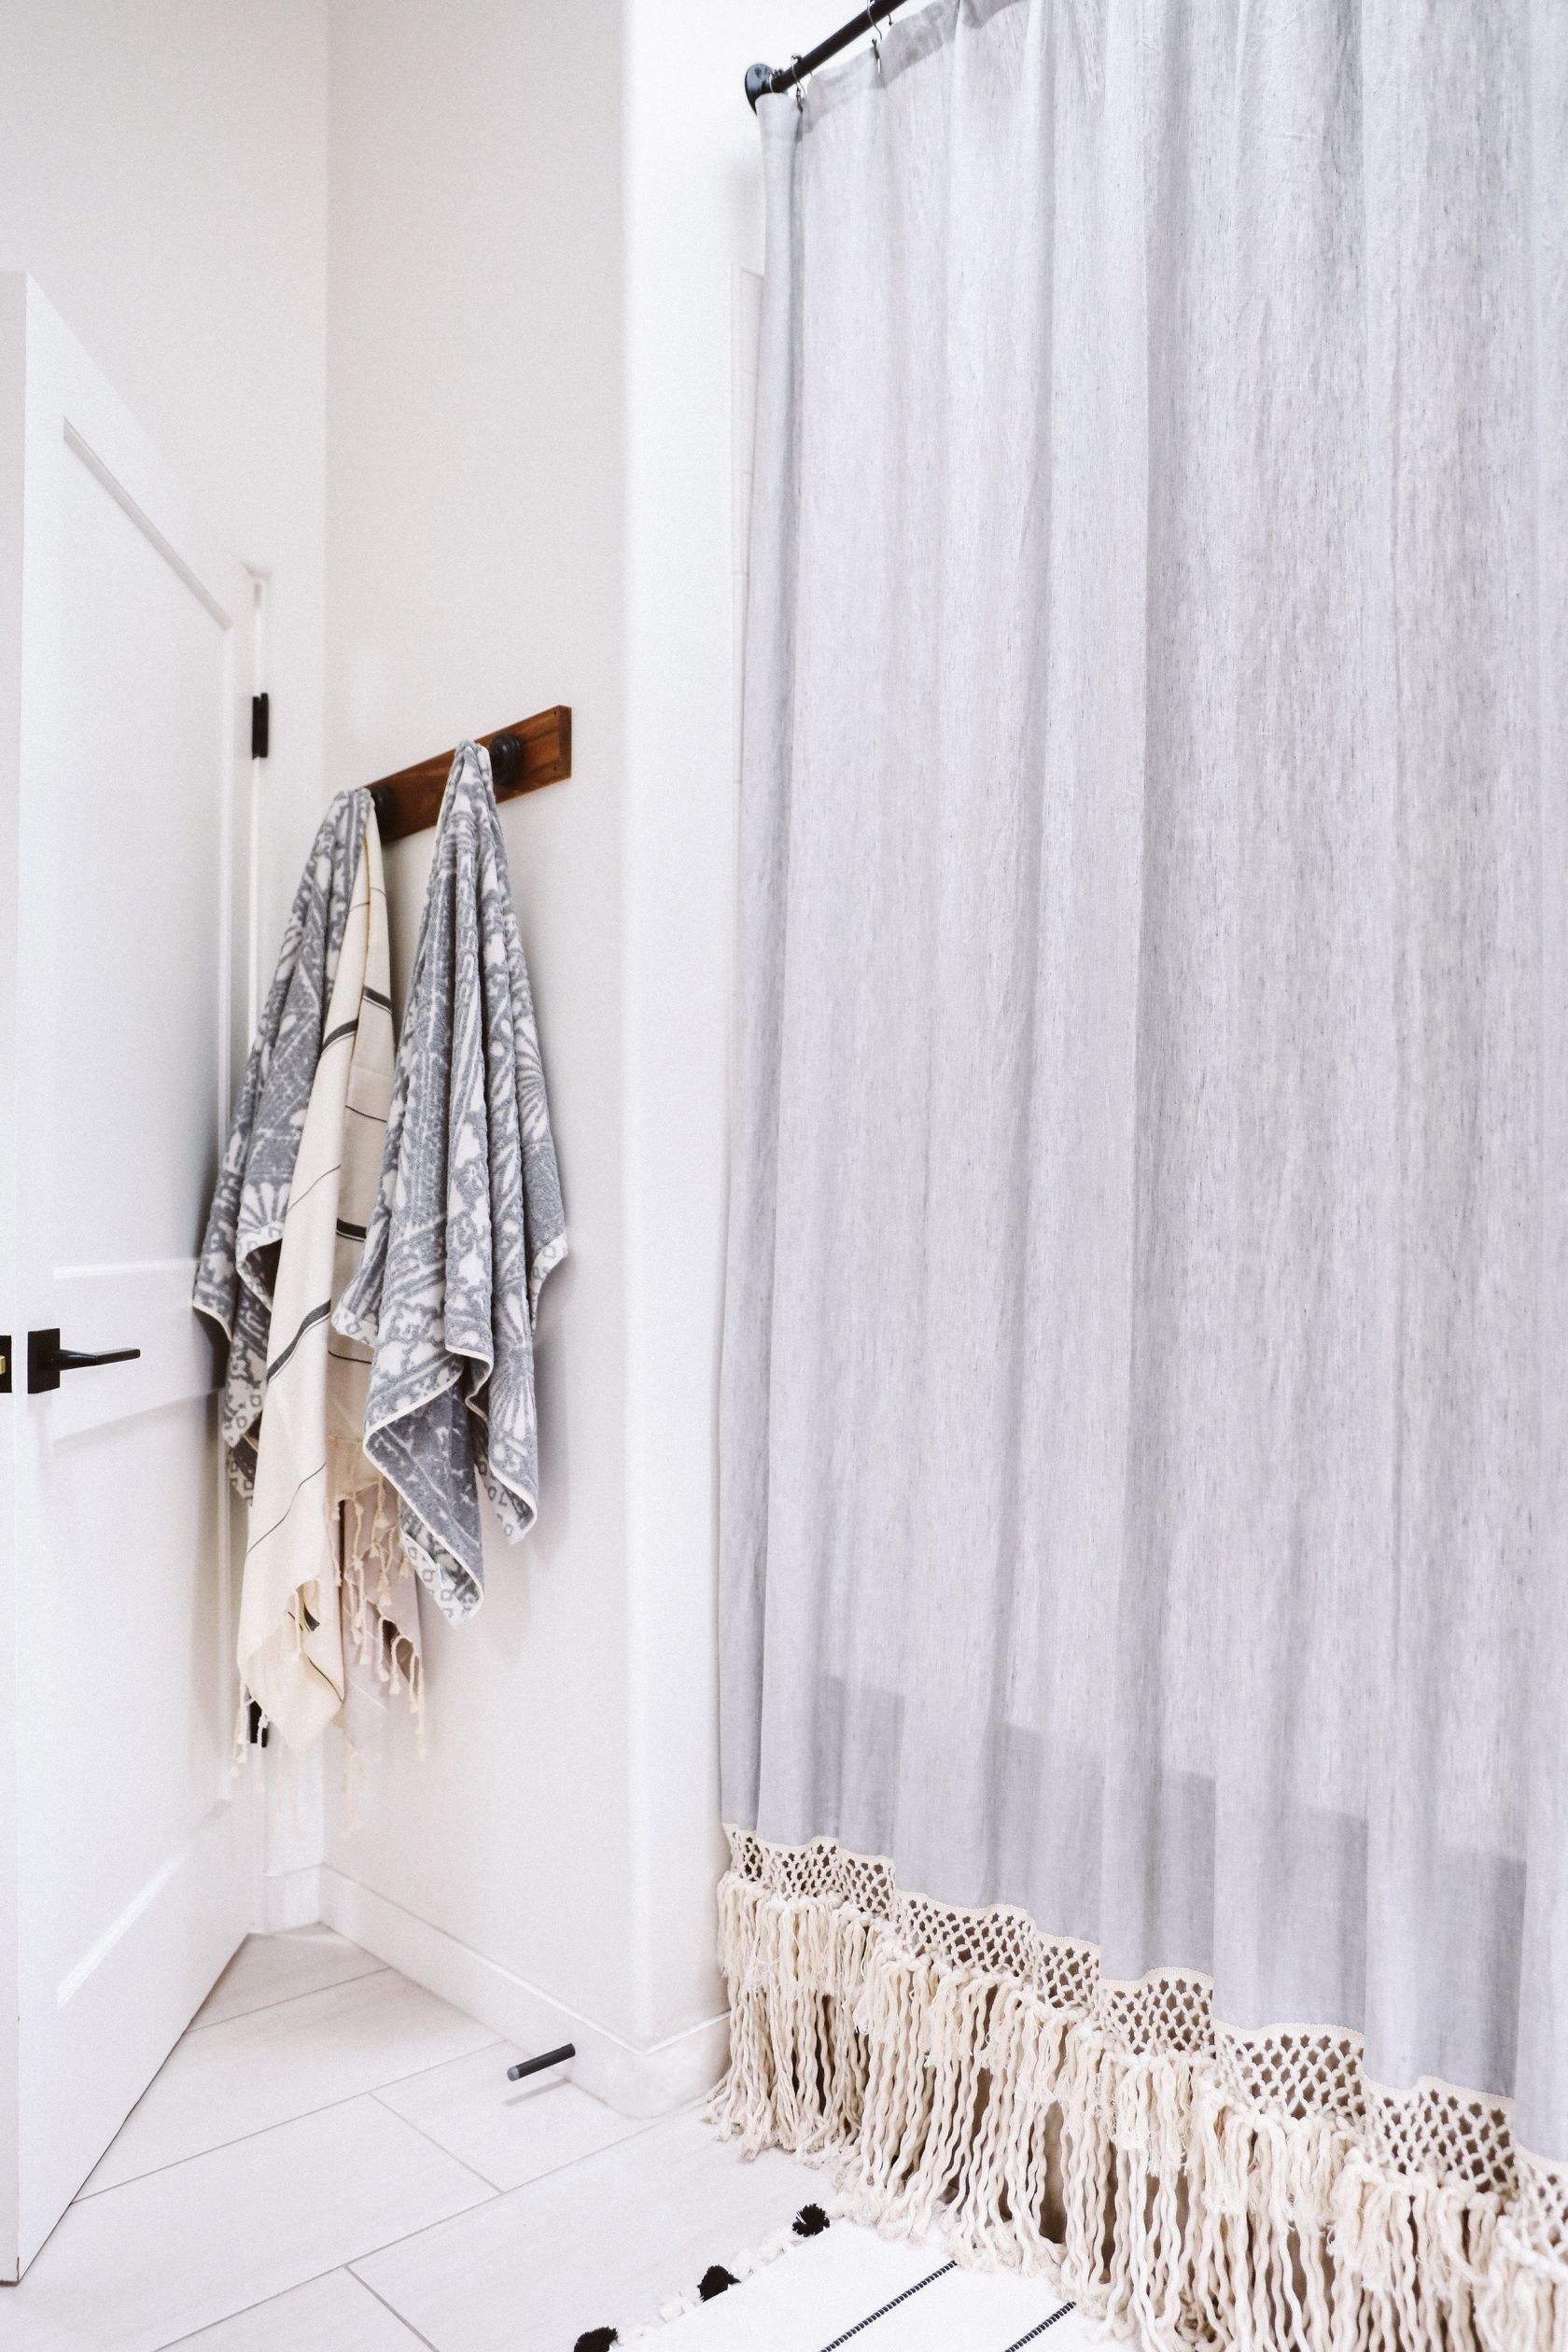 Nautical Rope Fringed Shower Curtain Diy With Images Diy